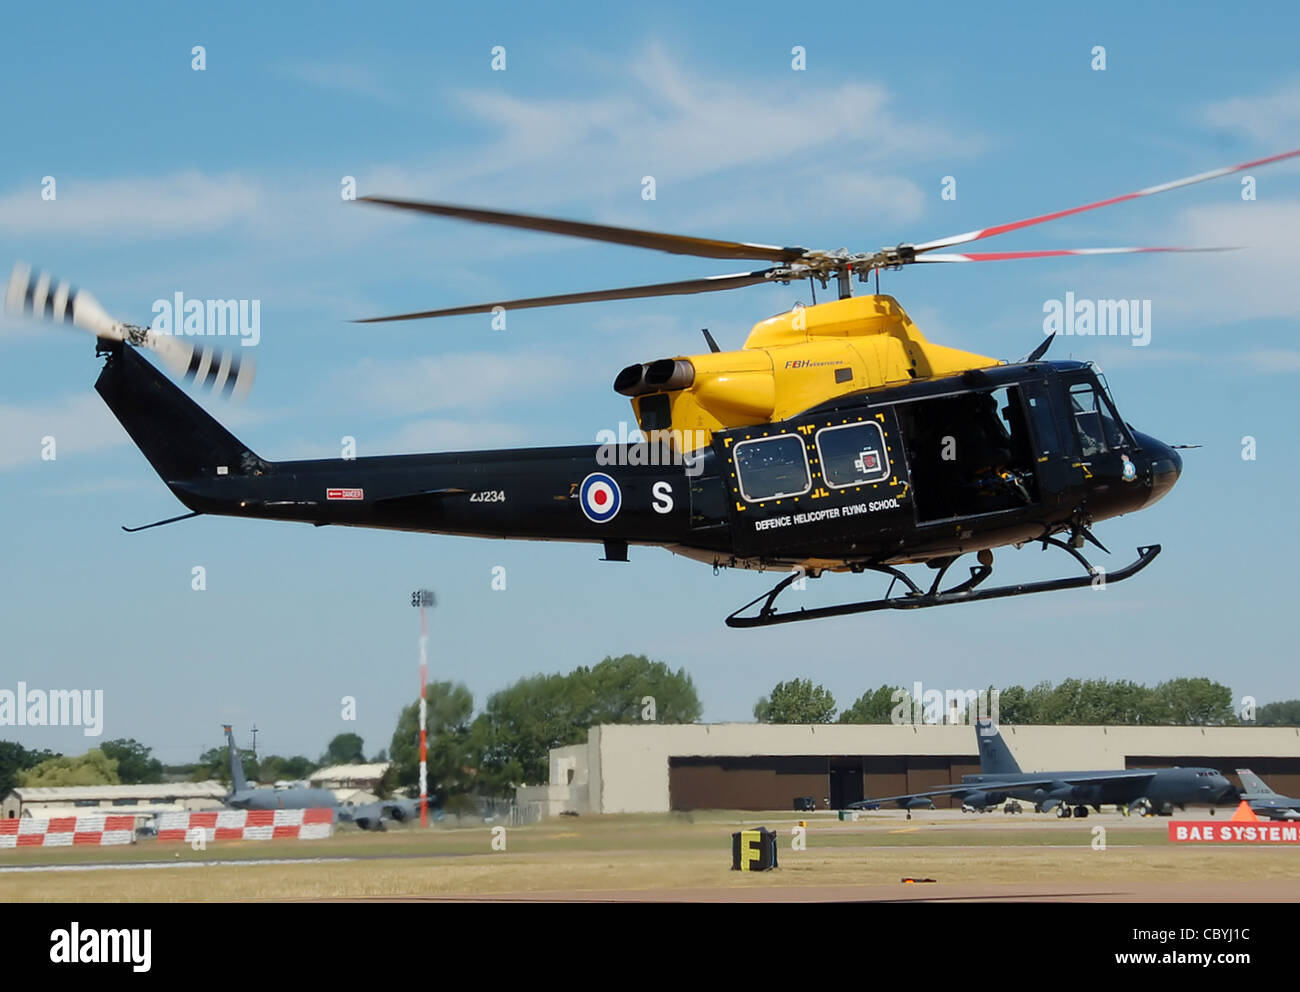 Bell 412EP Griffin HT1 helicopter of the Royal Air Force Defence Helicopter Flying School hover taxis to the runway - Stock Image